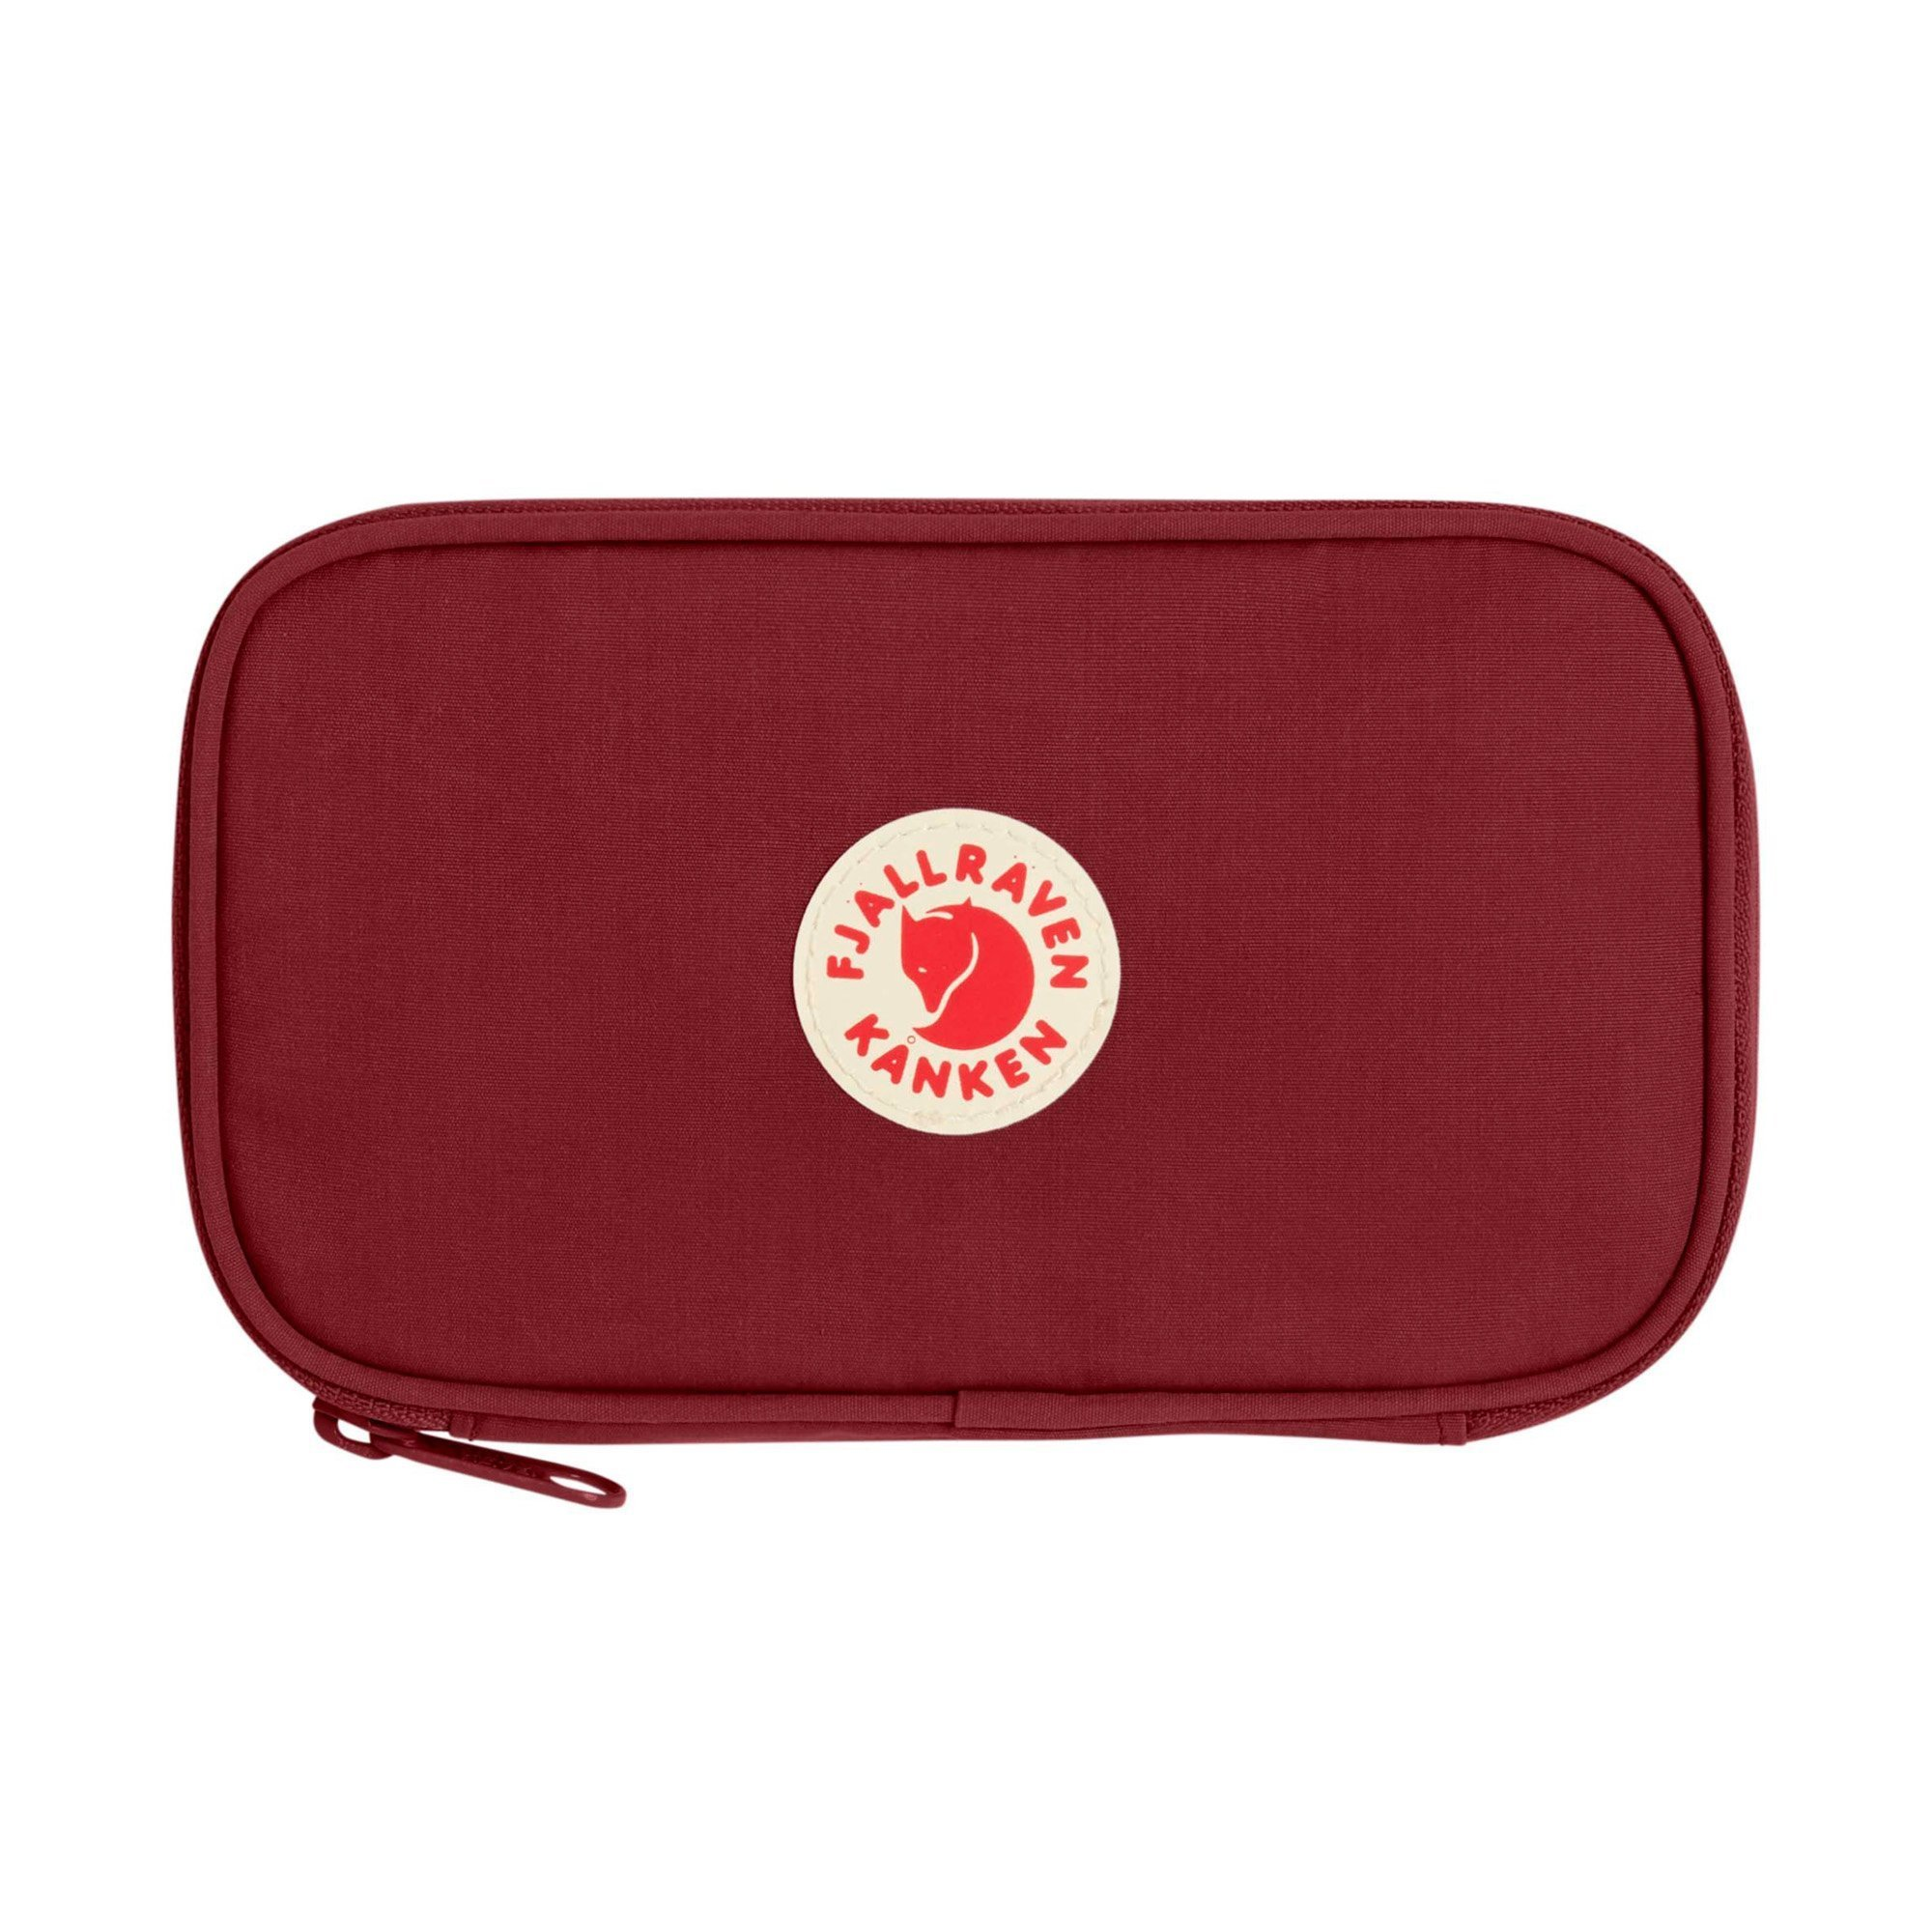 Fjallraven - Kanken Travel Wallet for Passports, Ox Red